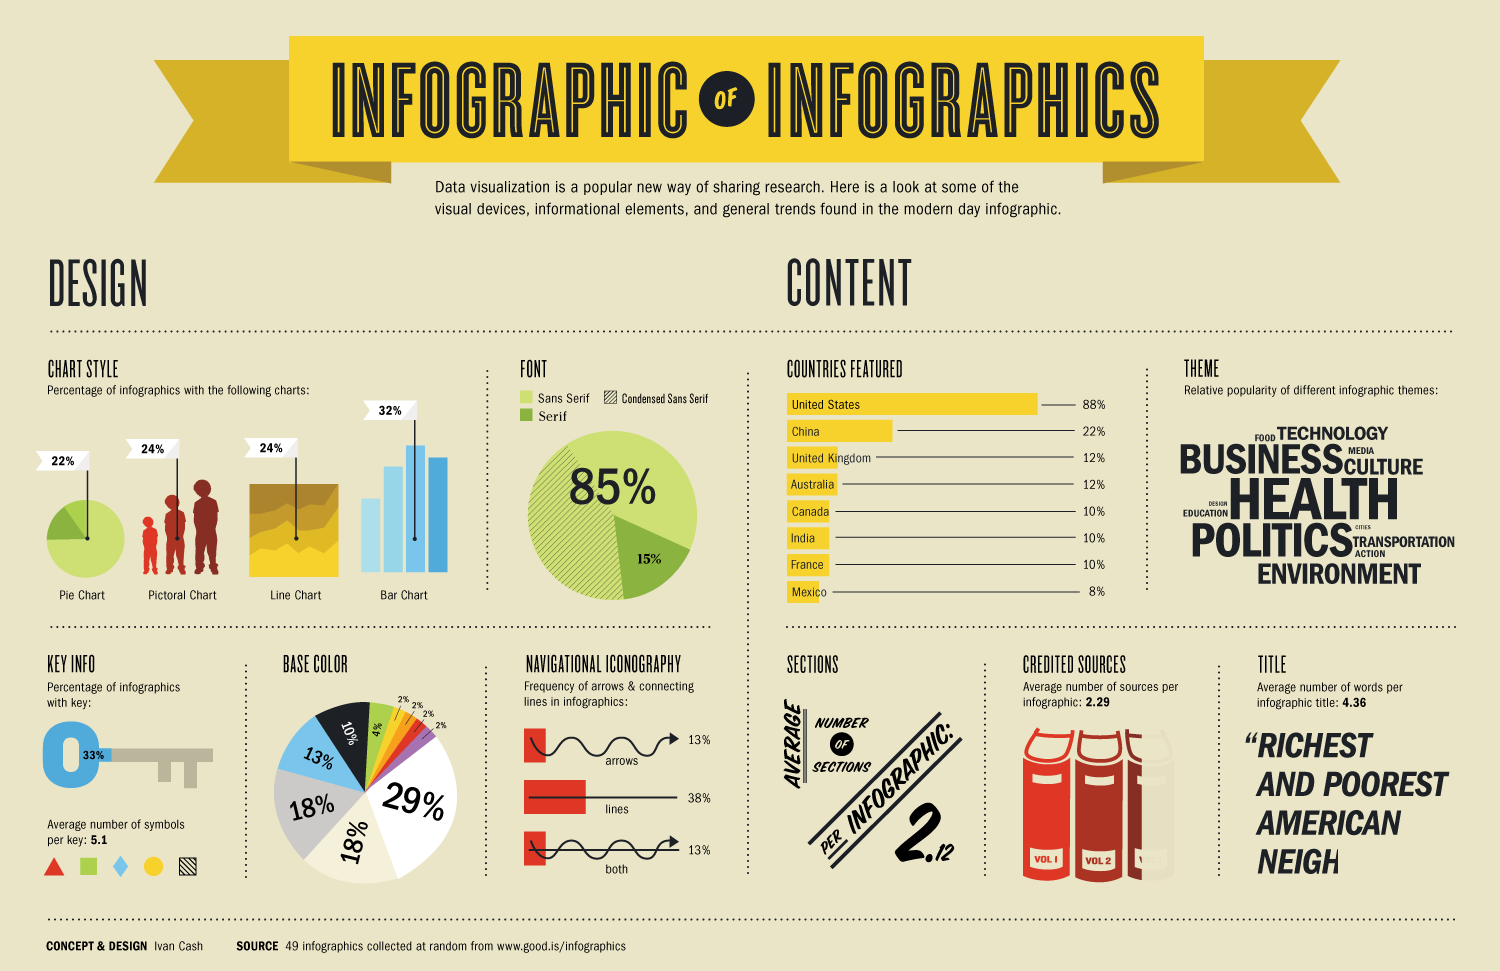 Info on Infographic